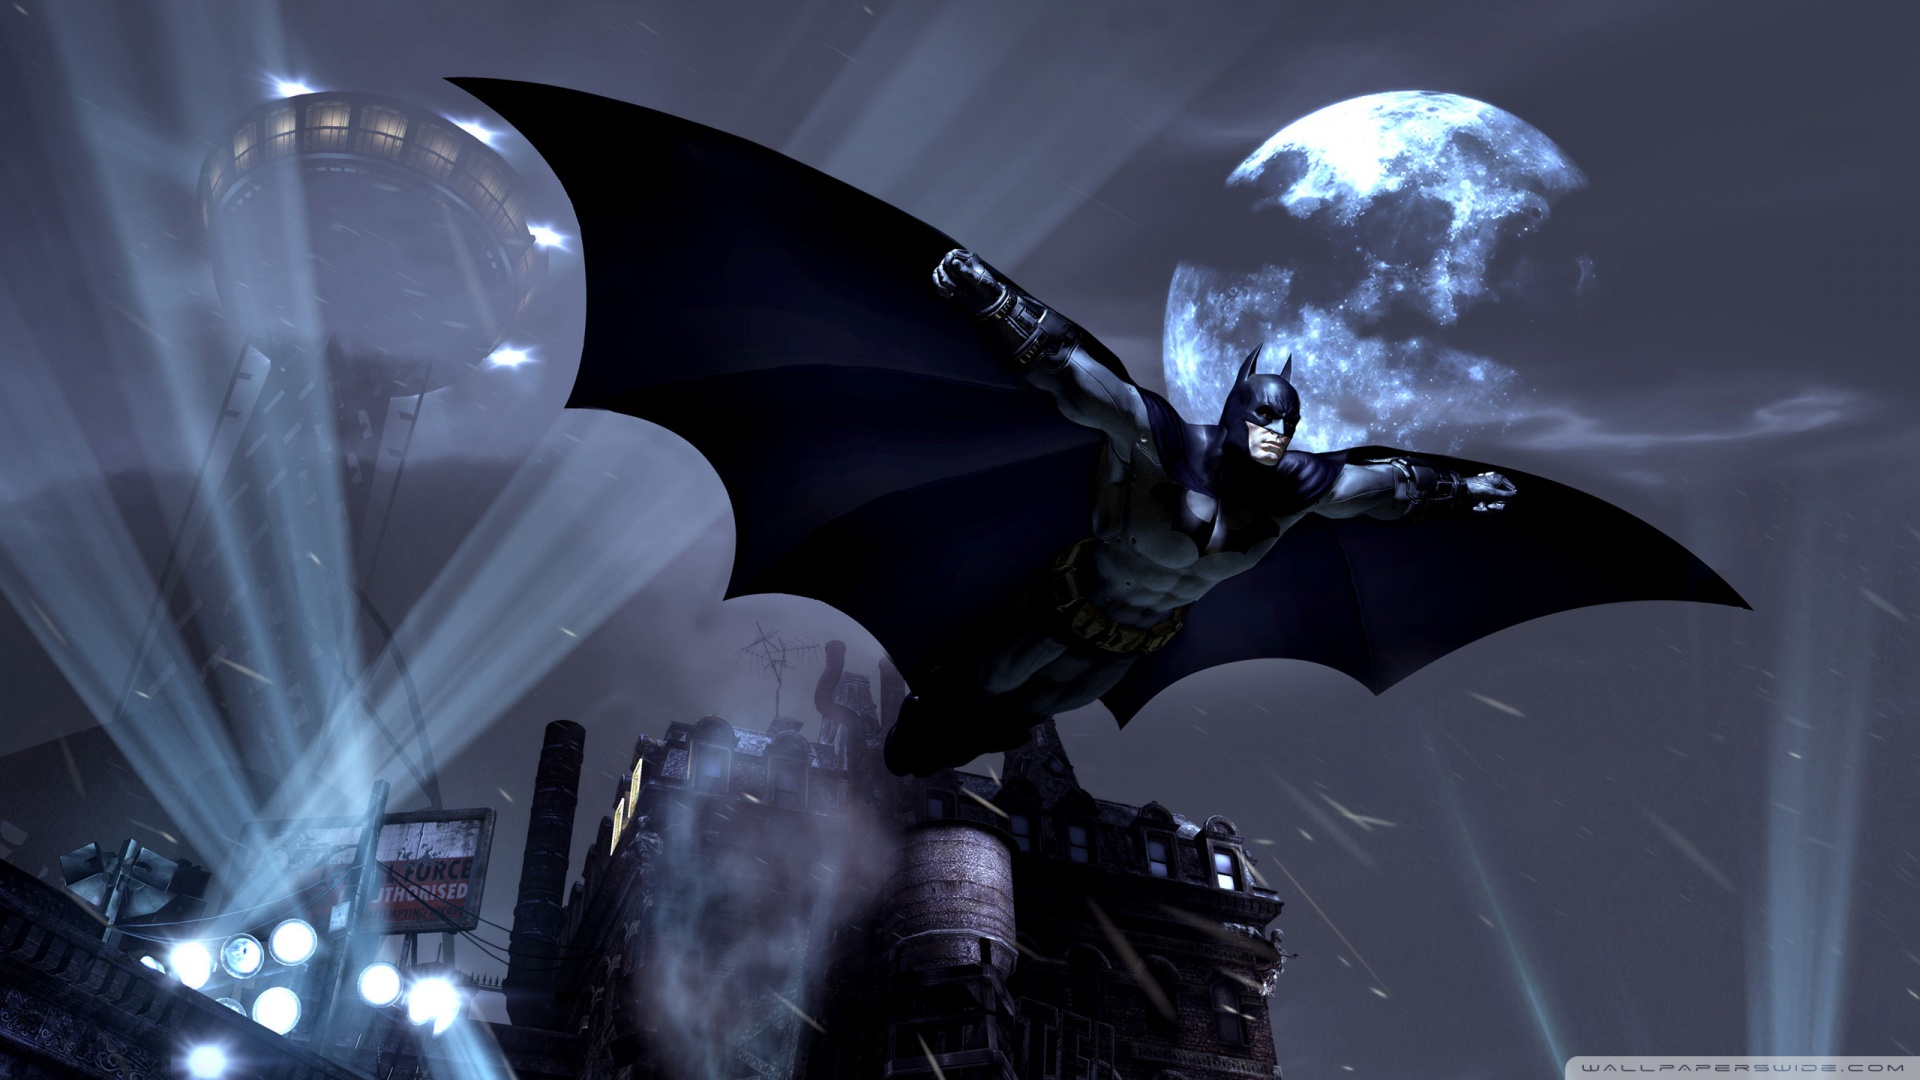 Batman Arkham City Wallpaper 1920x1080 Batman Arkham City 1920x1080